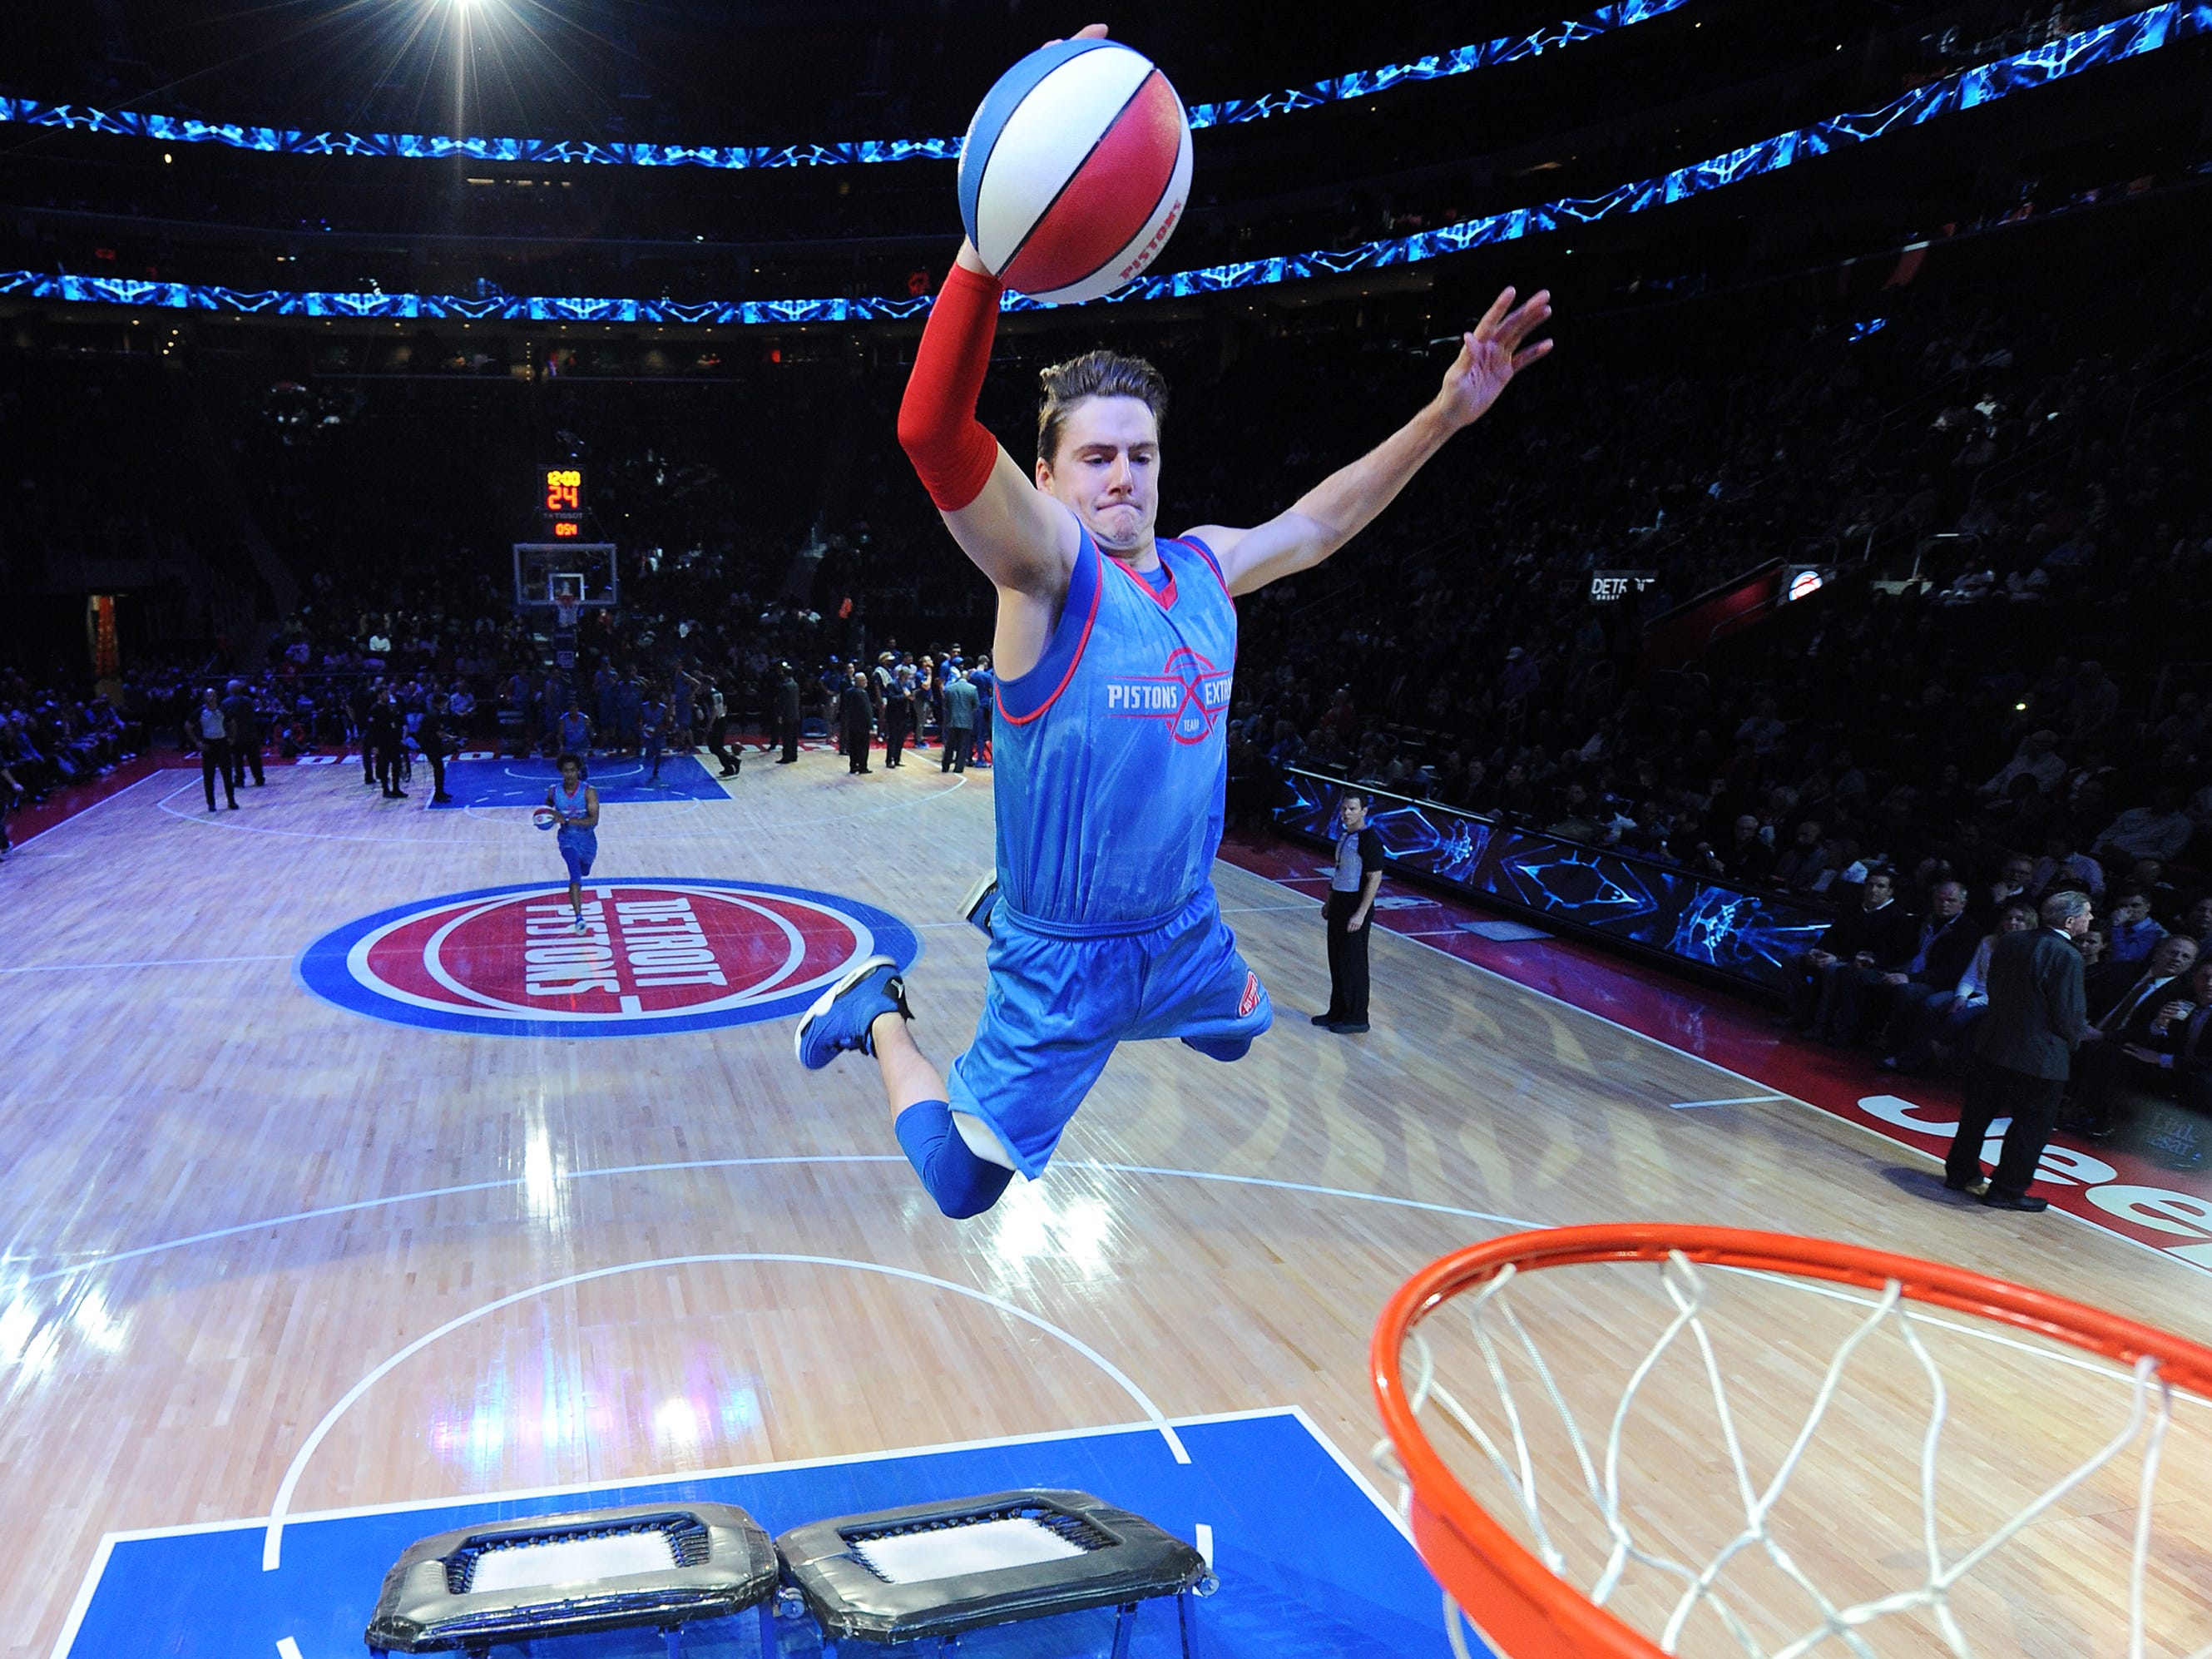 Chad of the Pistons Extreme Team performed during a time-out in the fourth quarter.